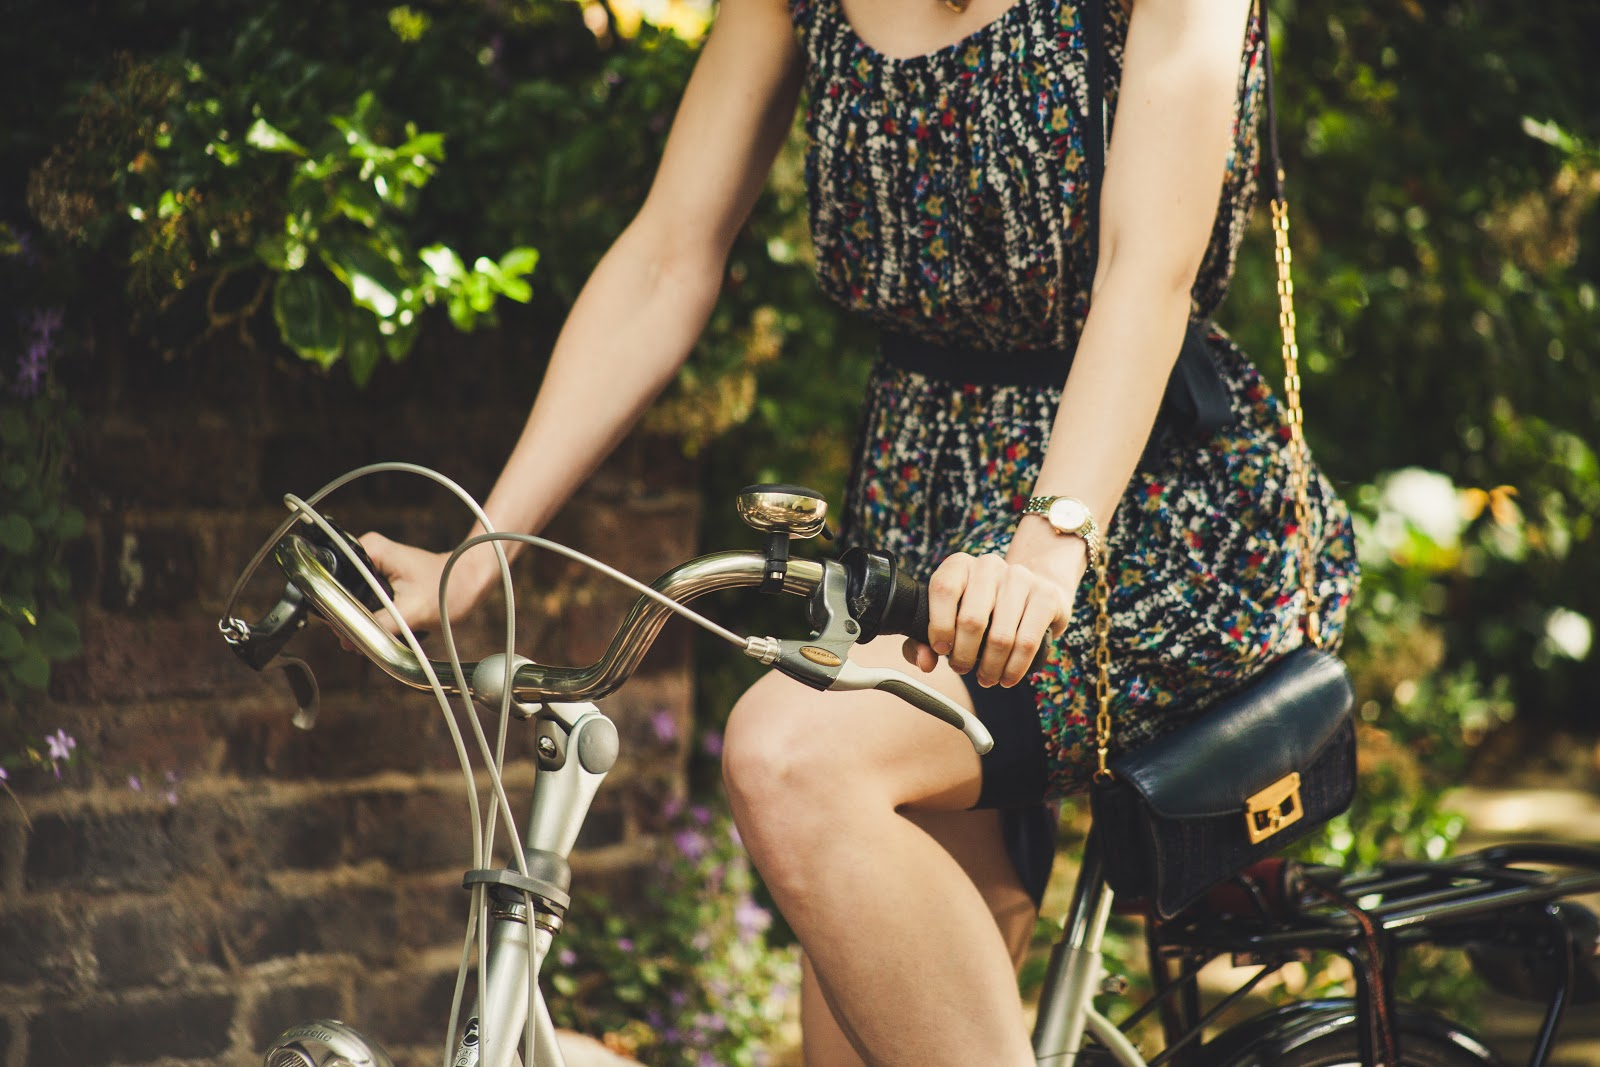 five ways to ride a bike in a dress...jk there's no way to do that